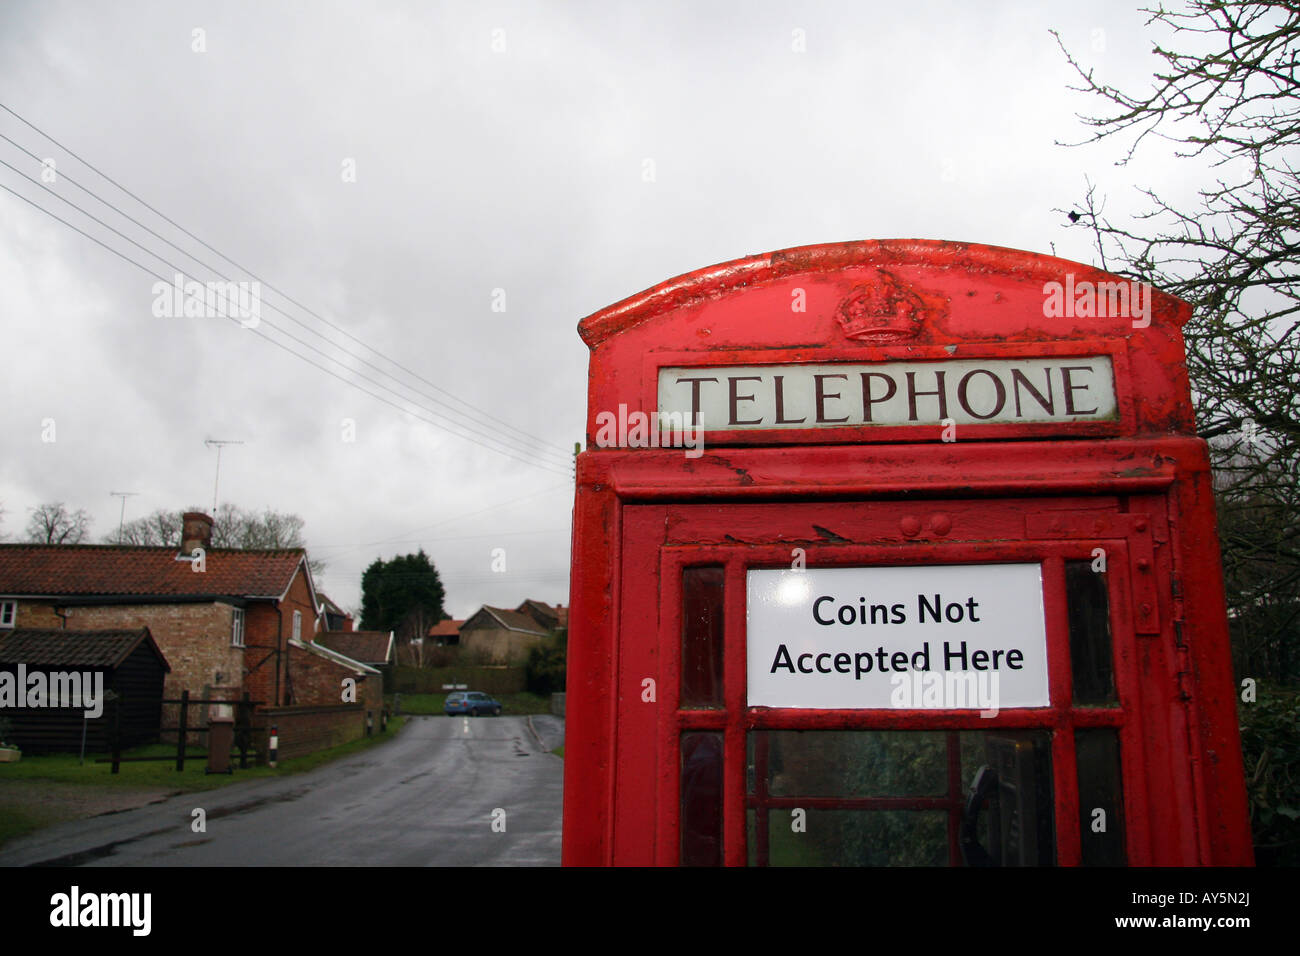 A telephone box that does not accept coins Stock Photo